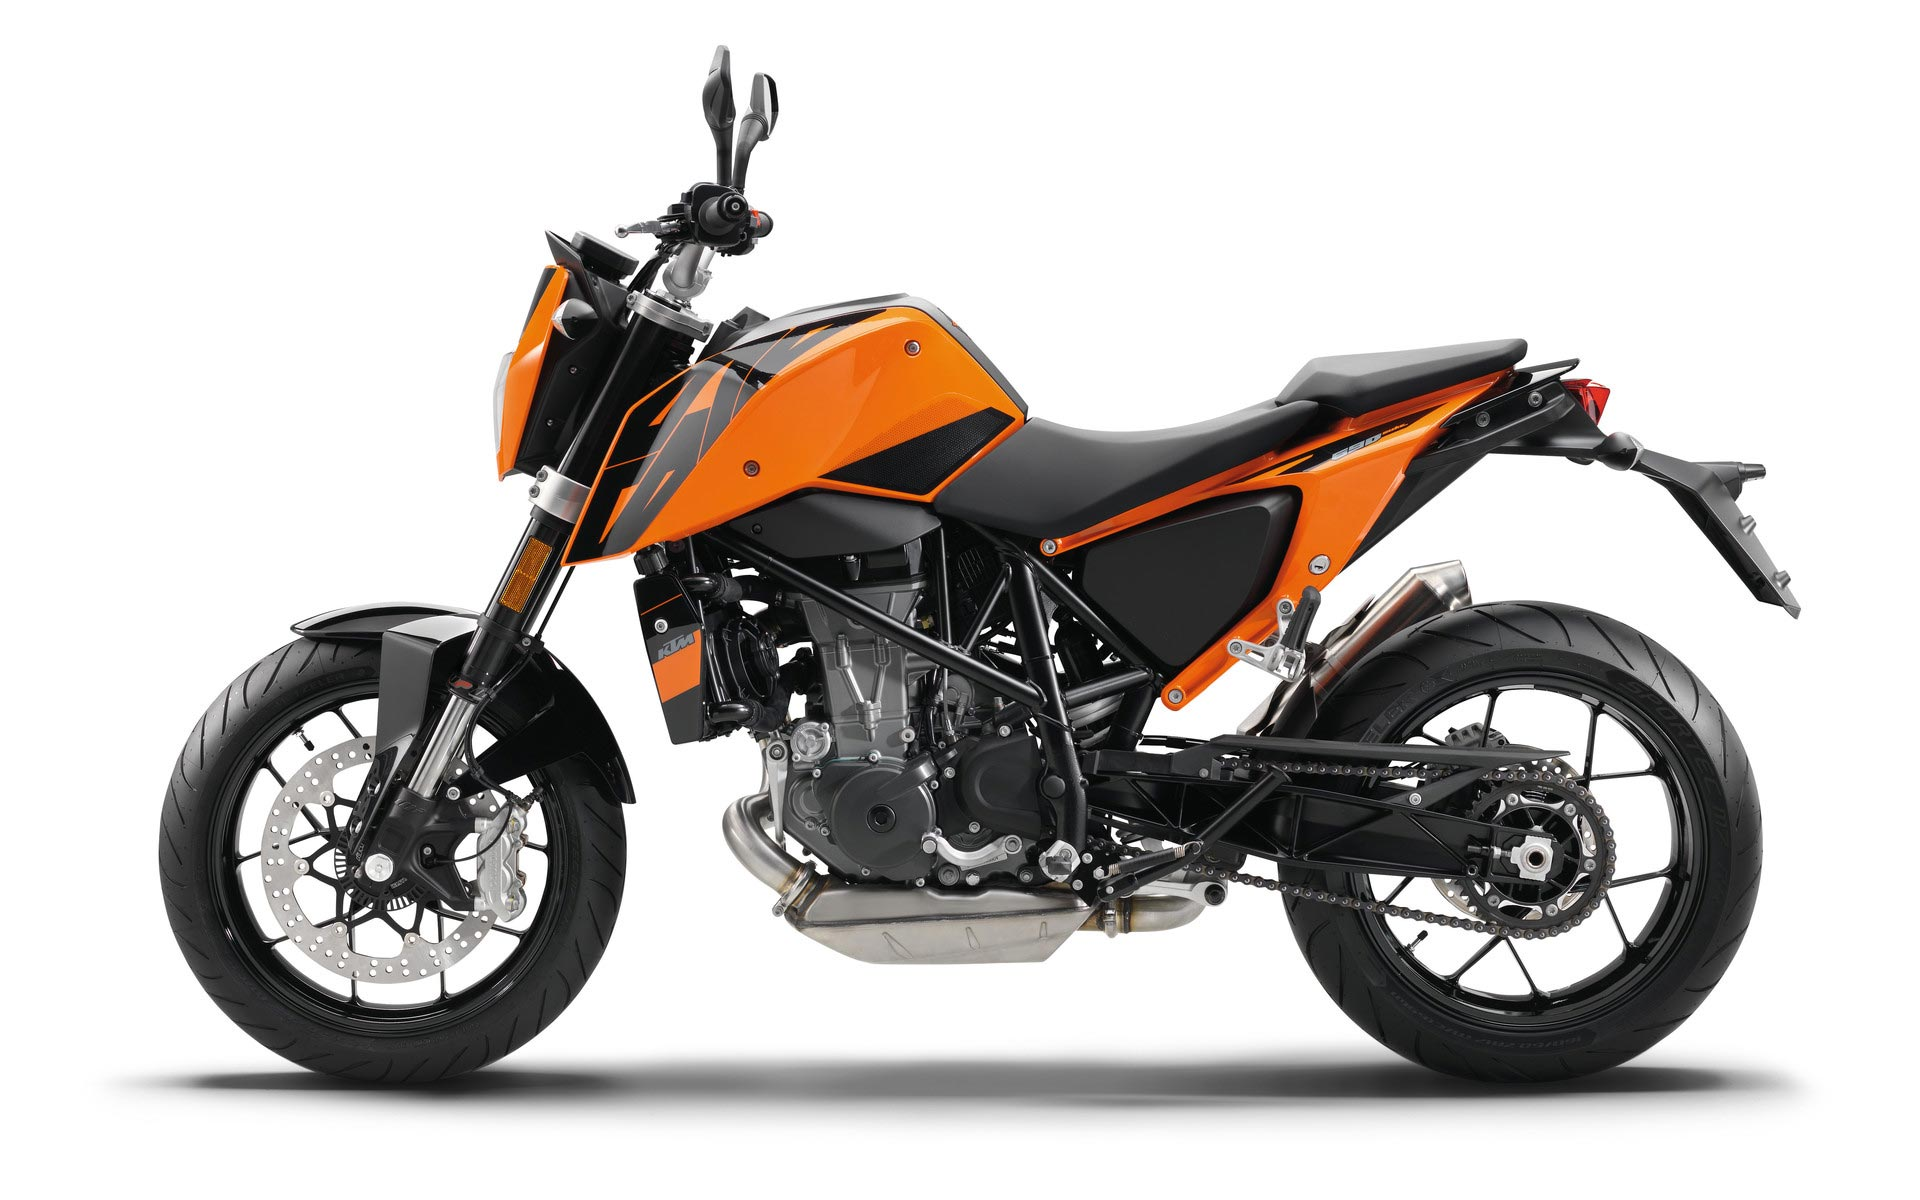 ktm bikes images 47 - photo #40